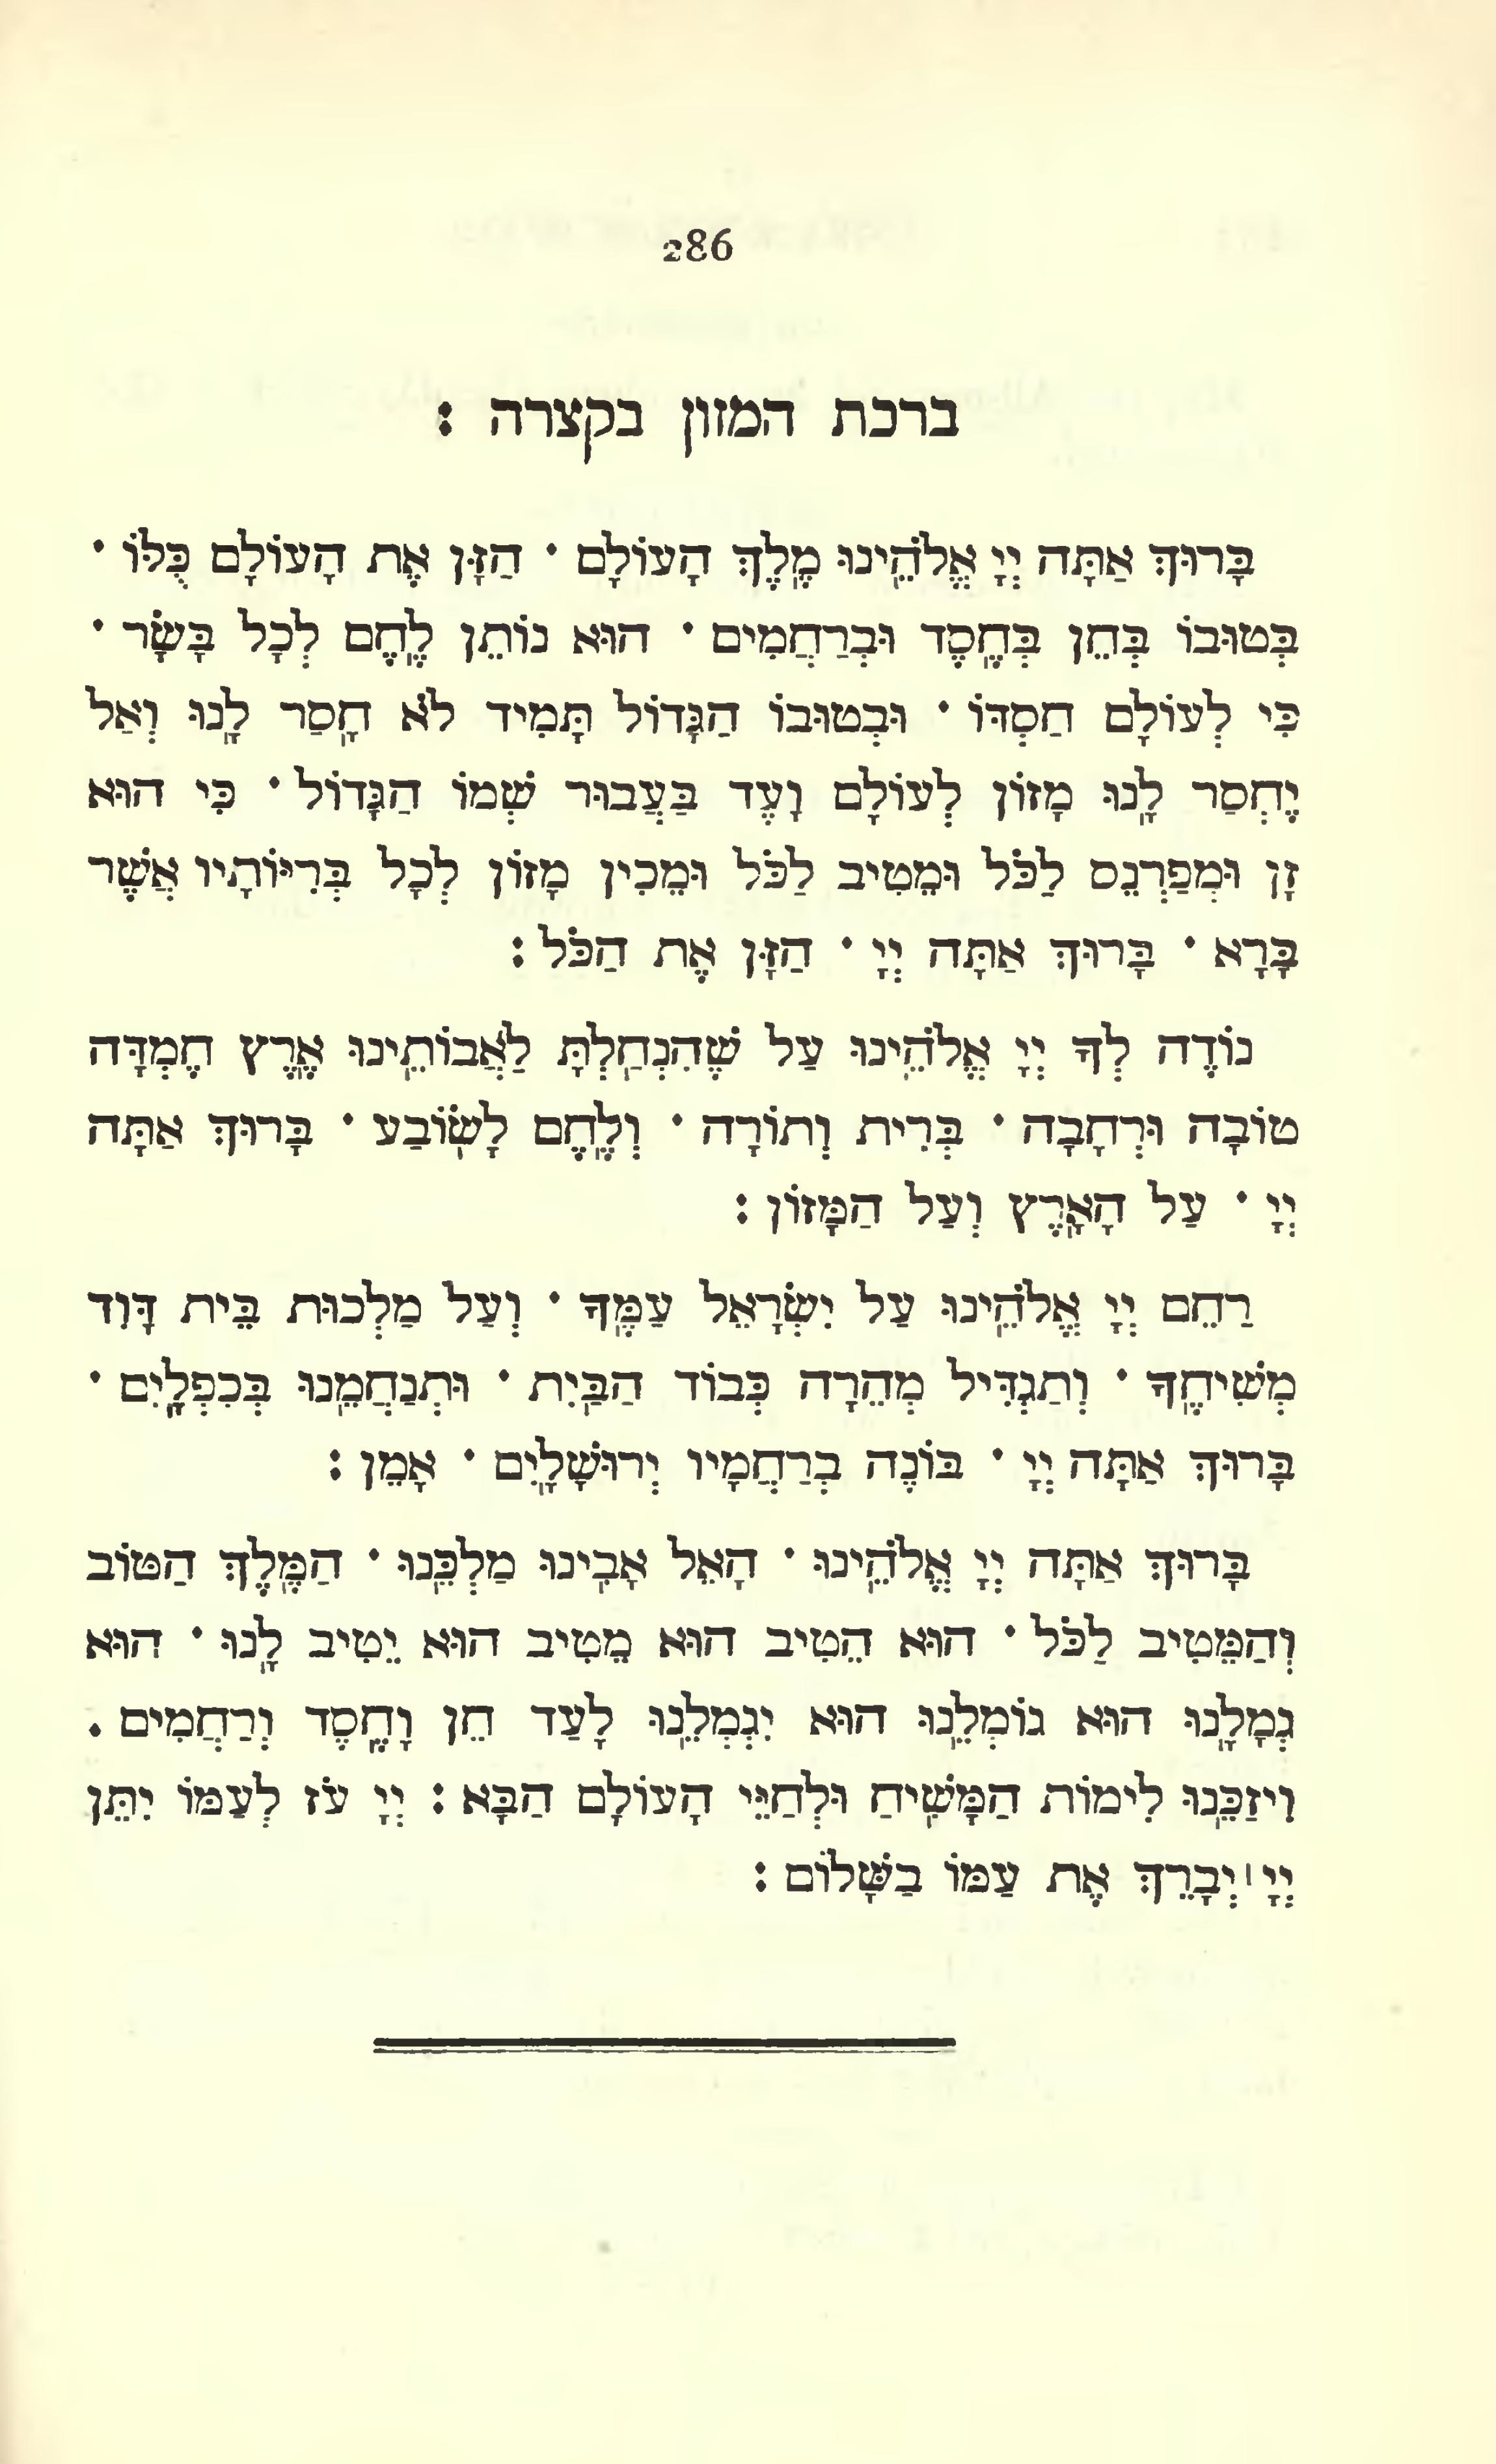 The Authorised Daily Prayer Book of the United Hebrew Congregations